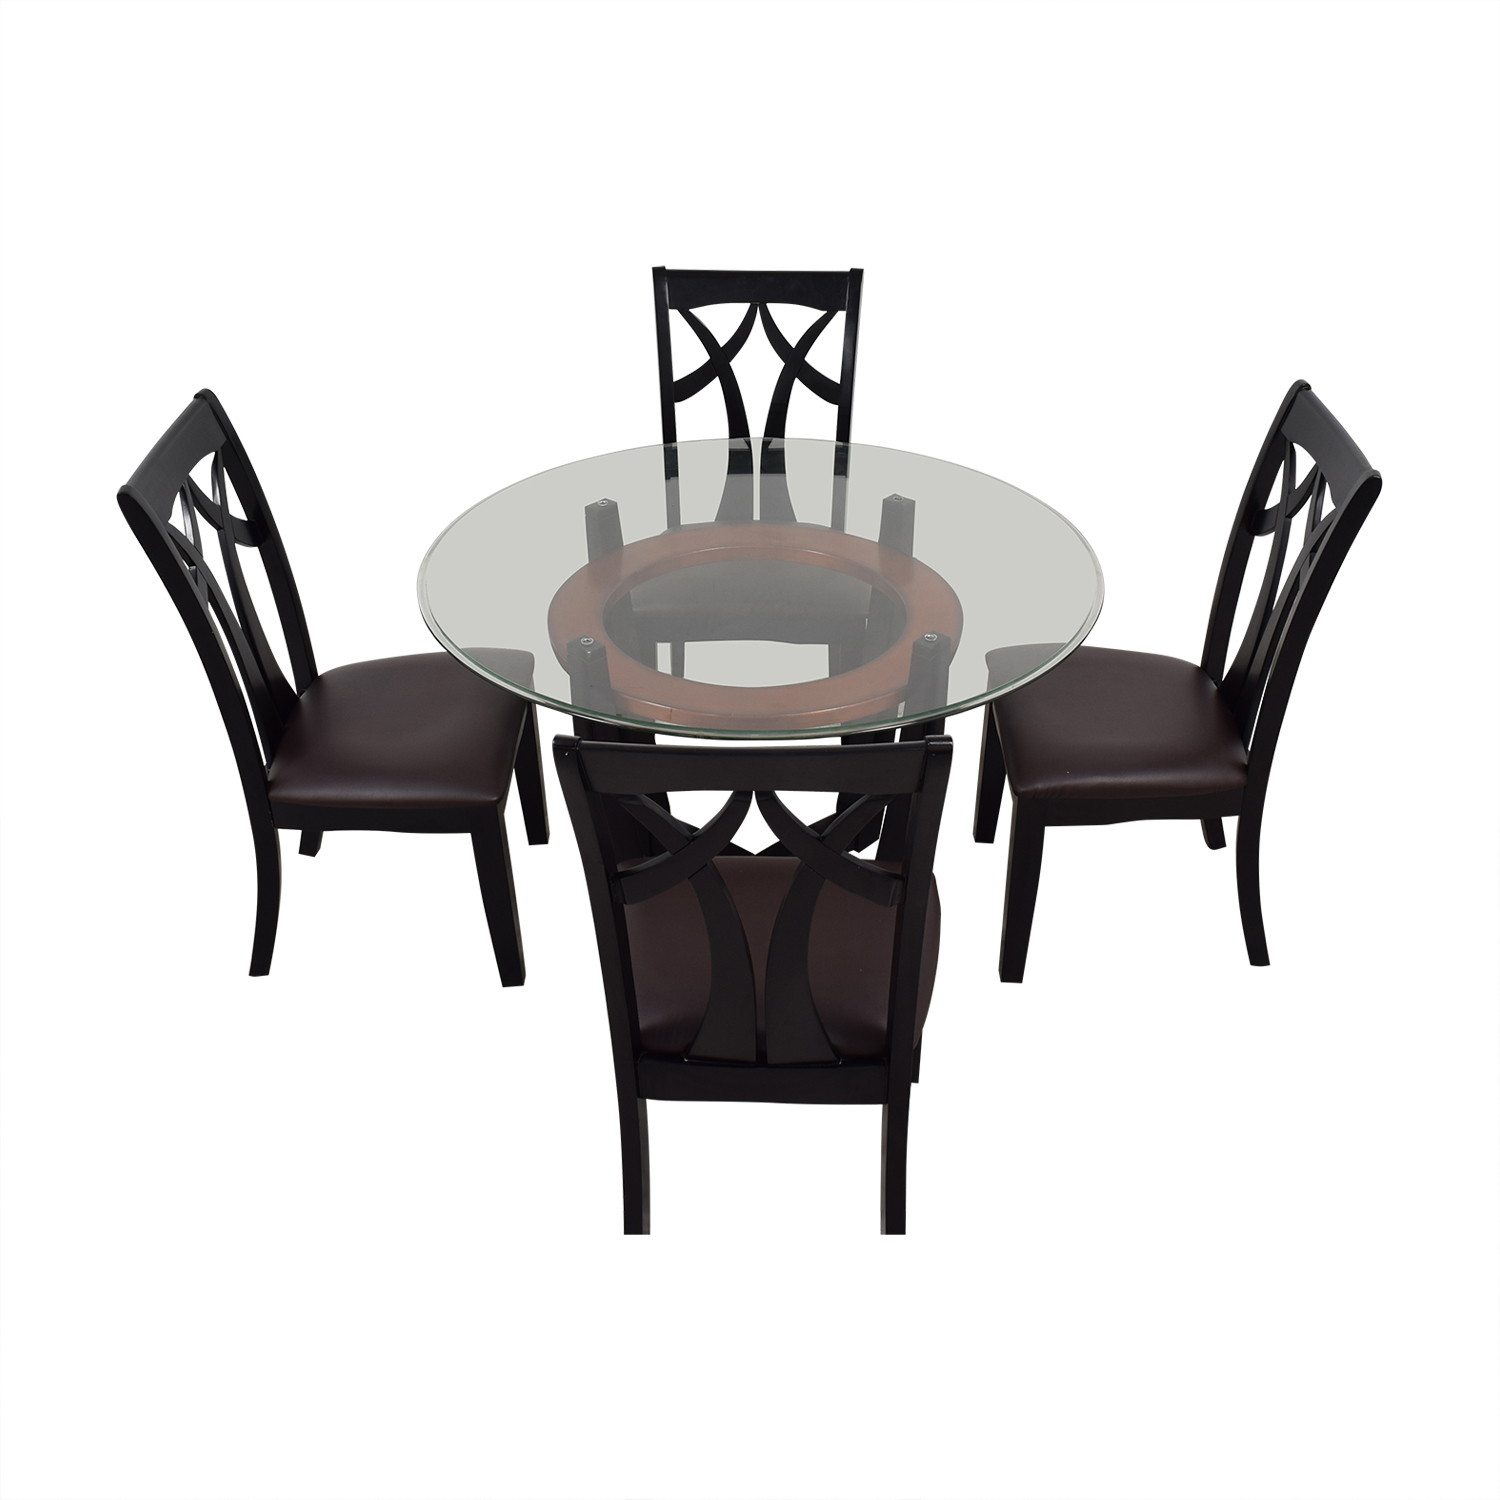 Raymour & Flanigan Raymour & Flanigan Wood and Glass Dining Set on sale